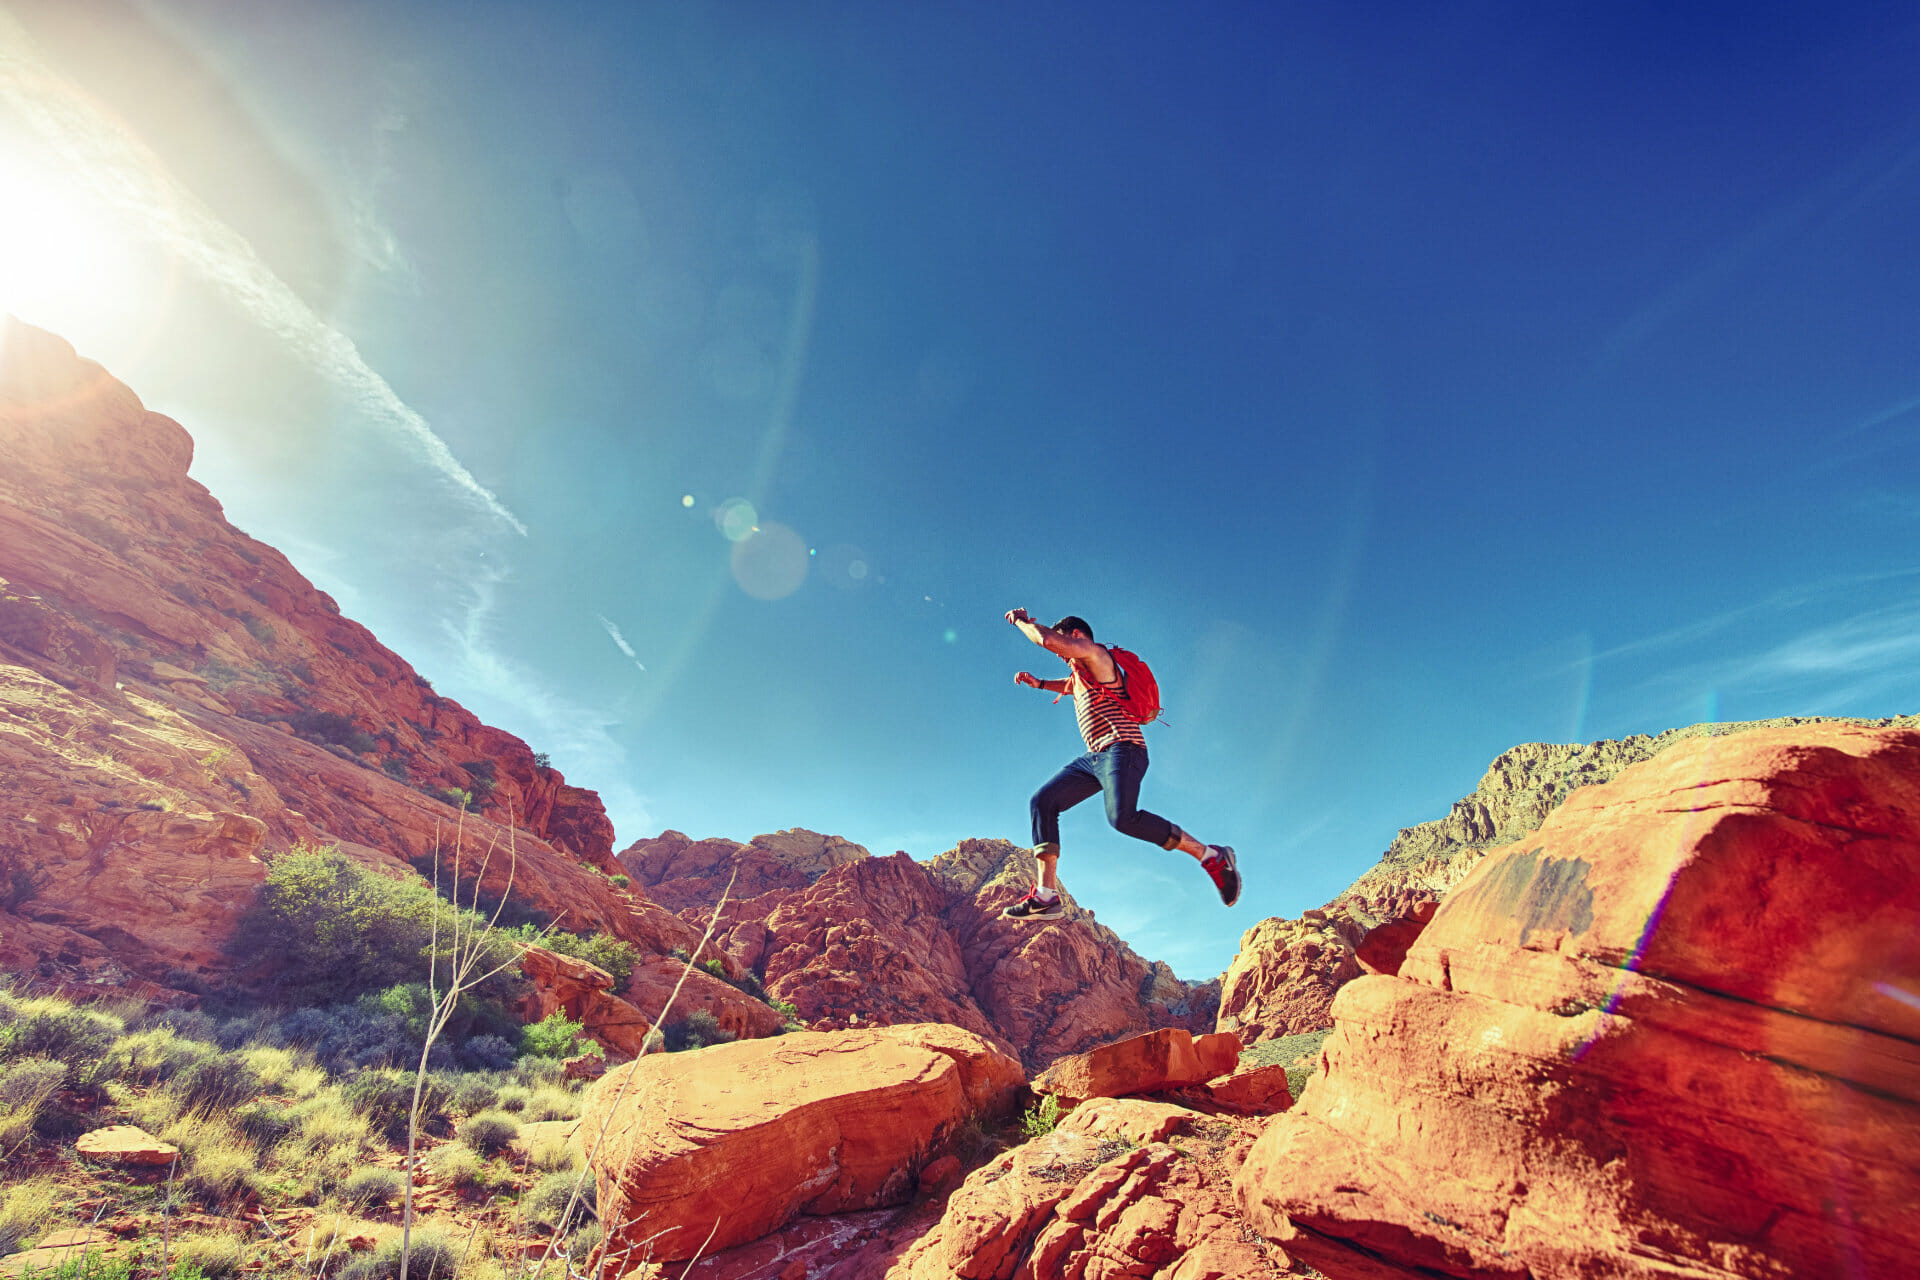 No regrets quotes and quotes on living life with no regrets - Man jumping over rock formation